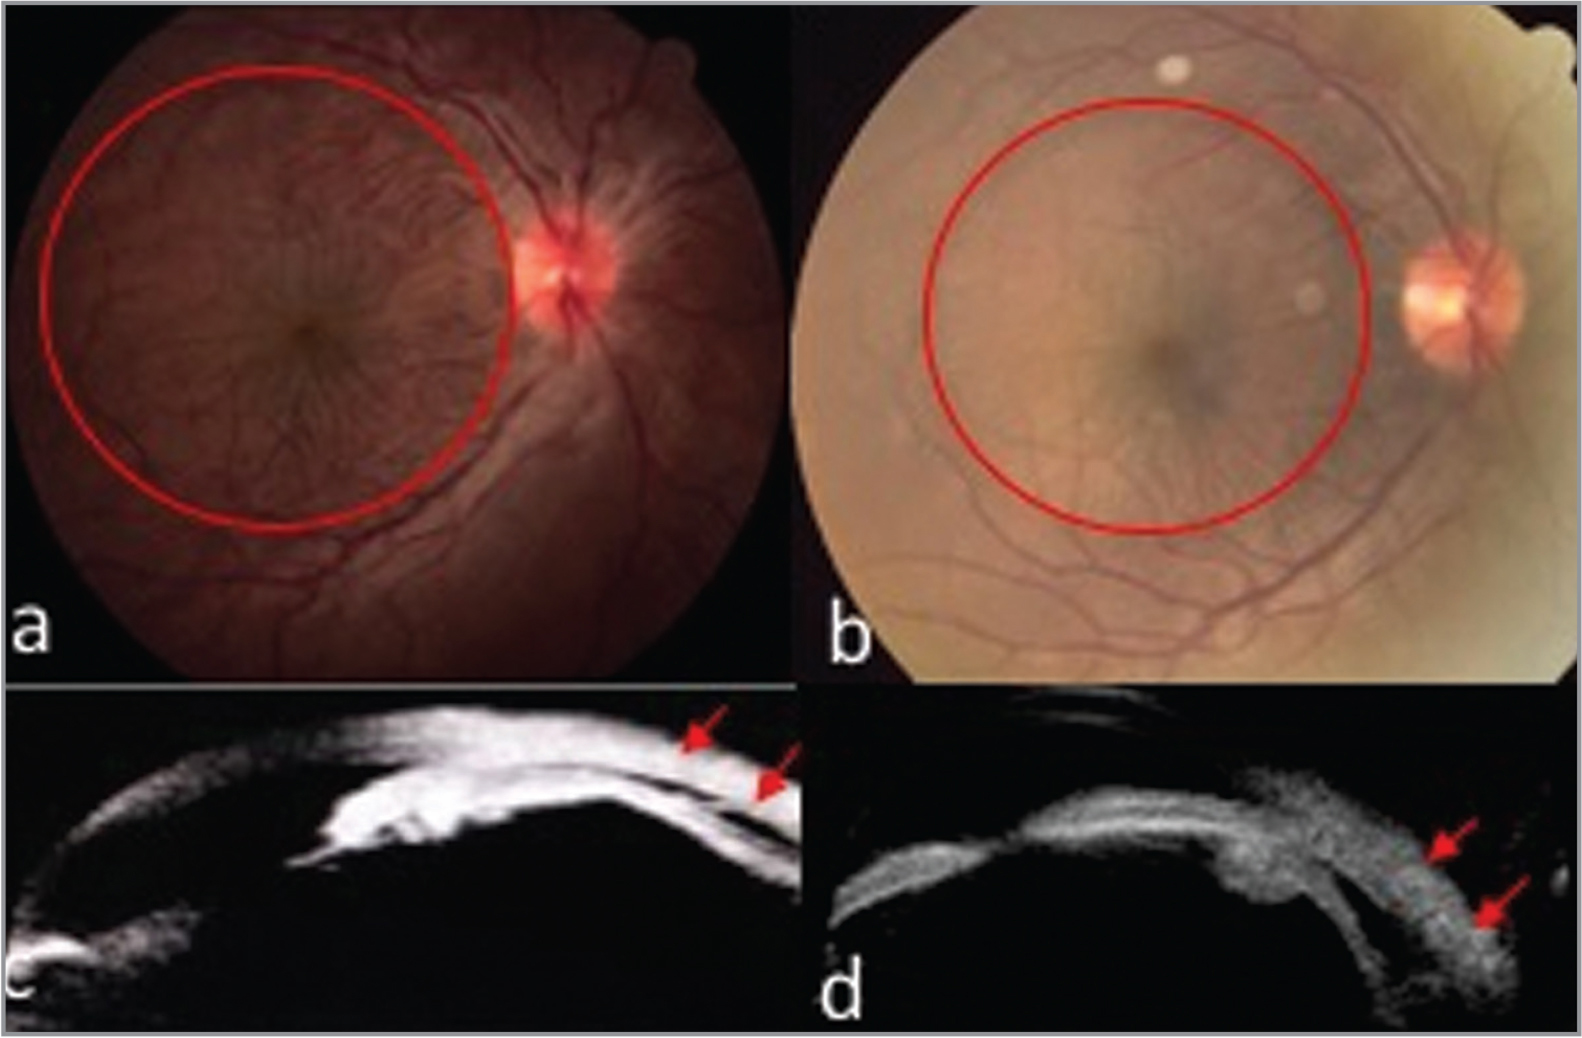 (a, b) Preoperative images. (b, d) Postoperative images. Color retinography: (a) evidence of hypotonic maculopathy, (b) residual subtle macular folds. (c, d) Ultrabiomicroscopy: representative images of ciliochoroidal detachment.